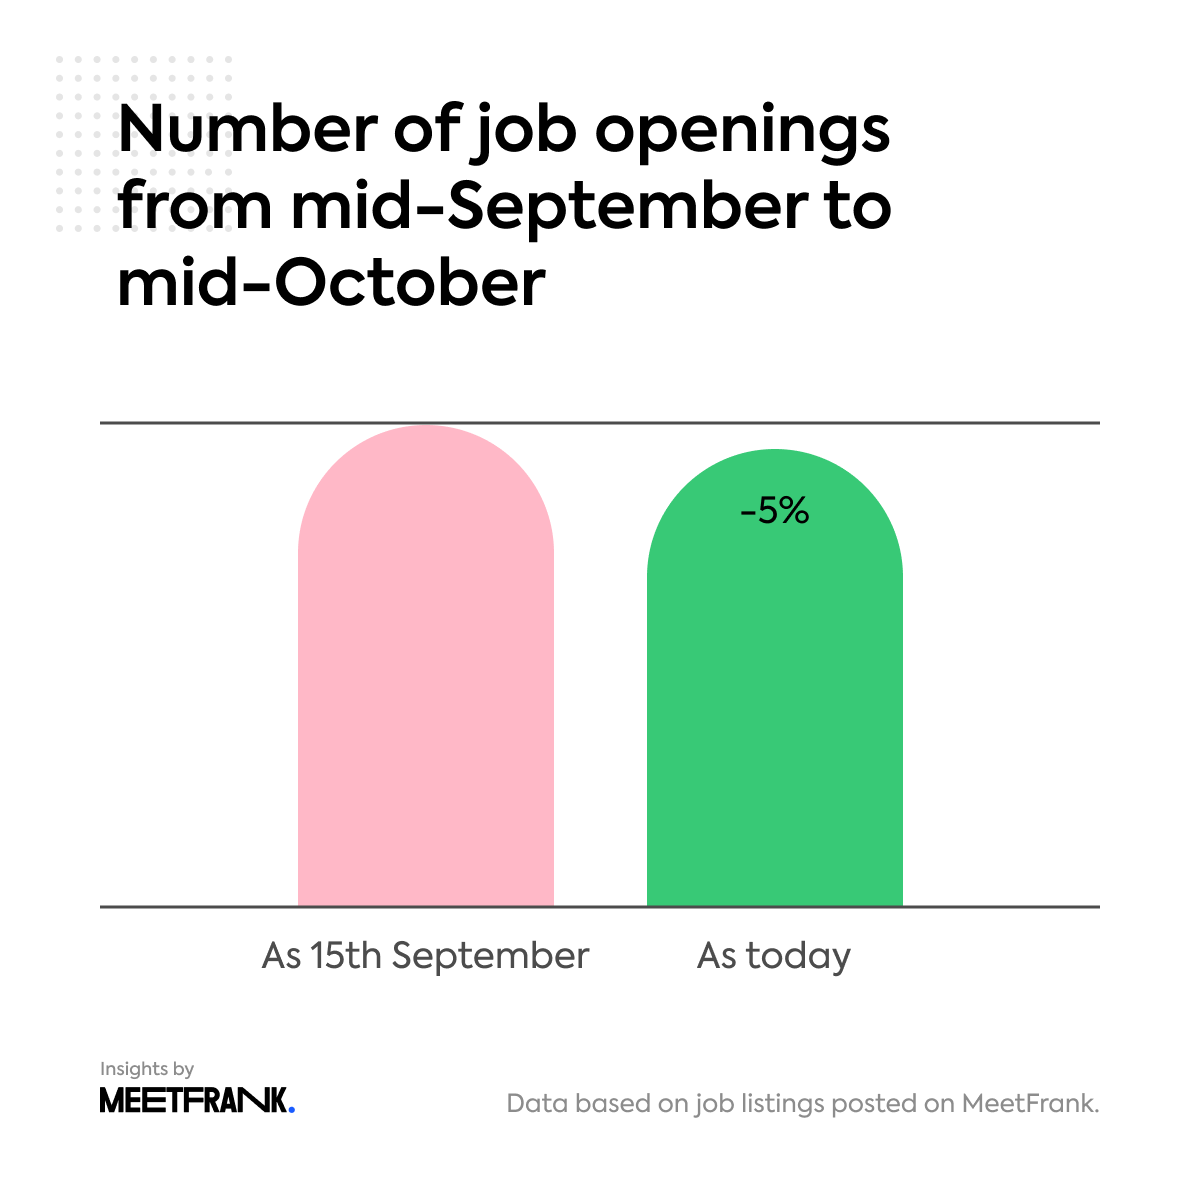 number of job openings in Finland